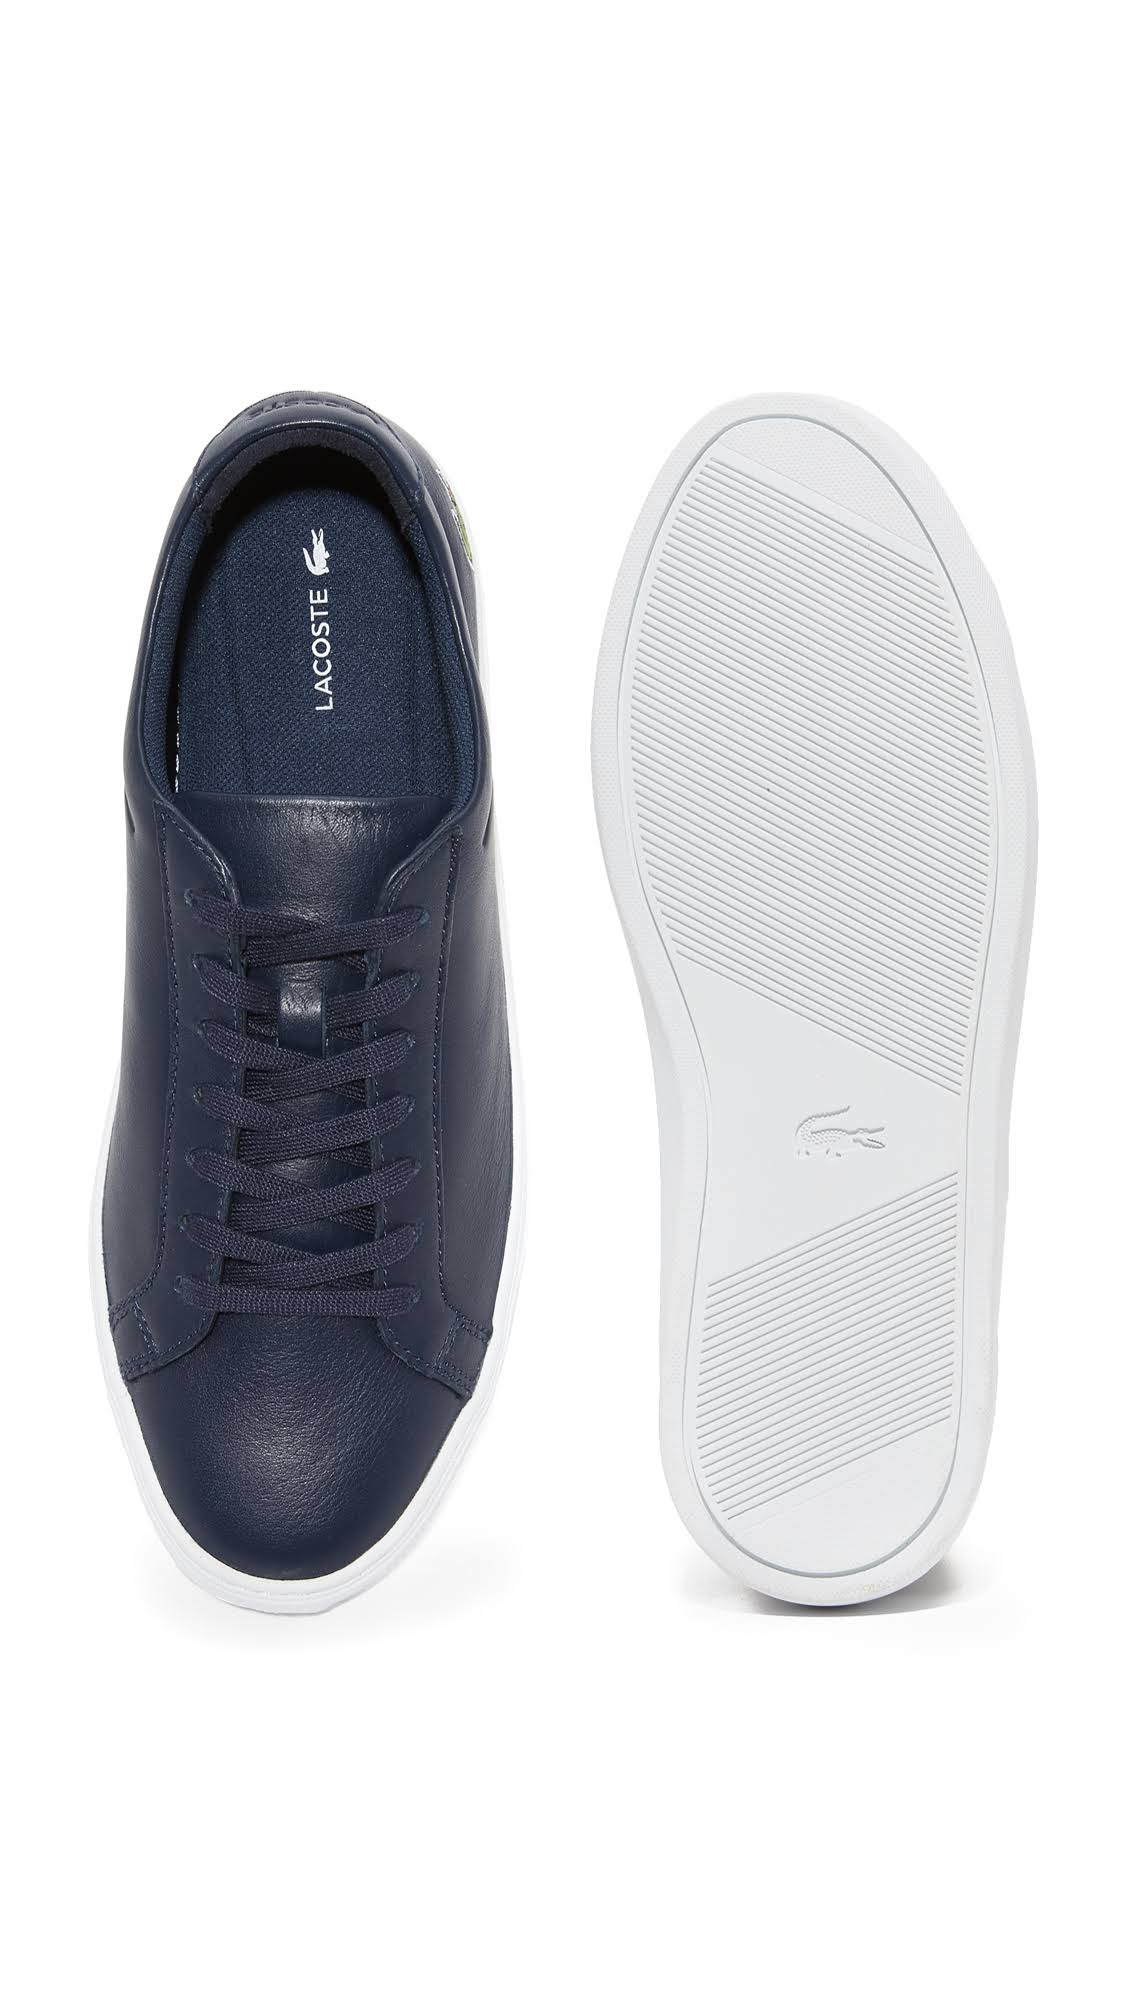 Lacoste-Men-039-s-L-12-12-116-1-Fashion-Sneaker-Navy-Leather-Lace-Up-Sneakers thumbnail 4